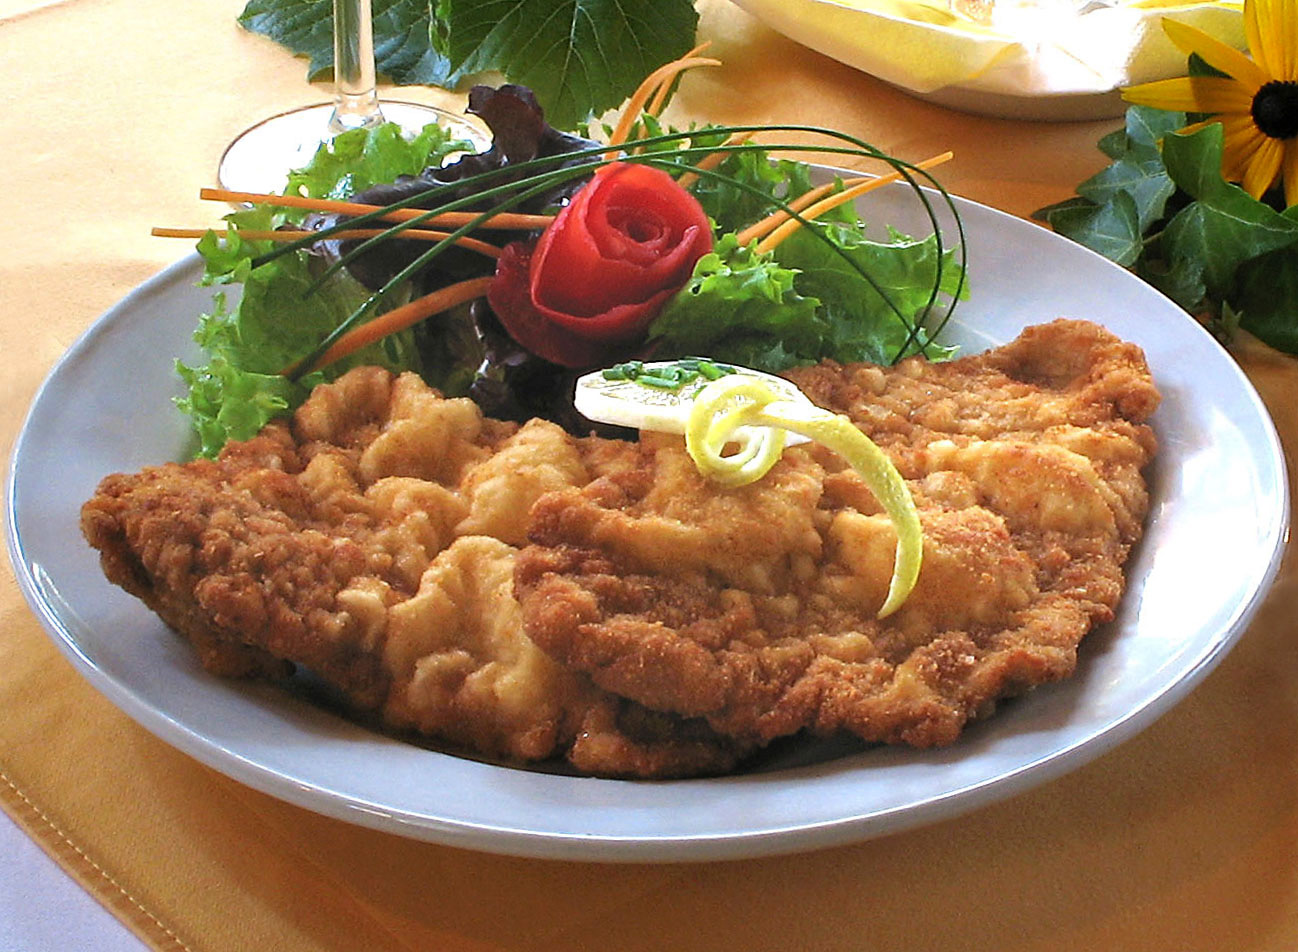 Wiener schnitzel recipe dishmaps for Austrian cuisine